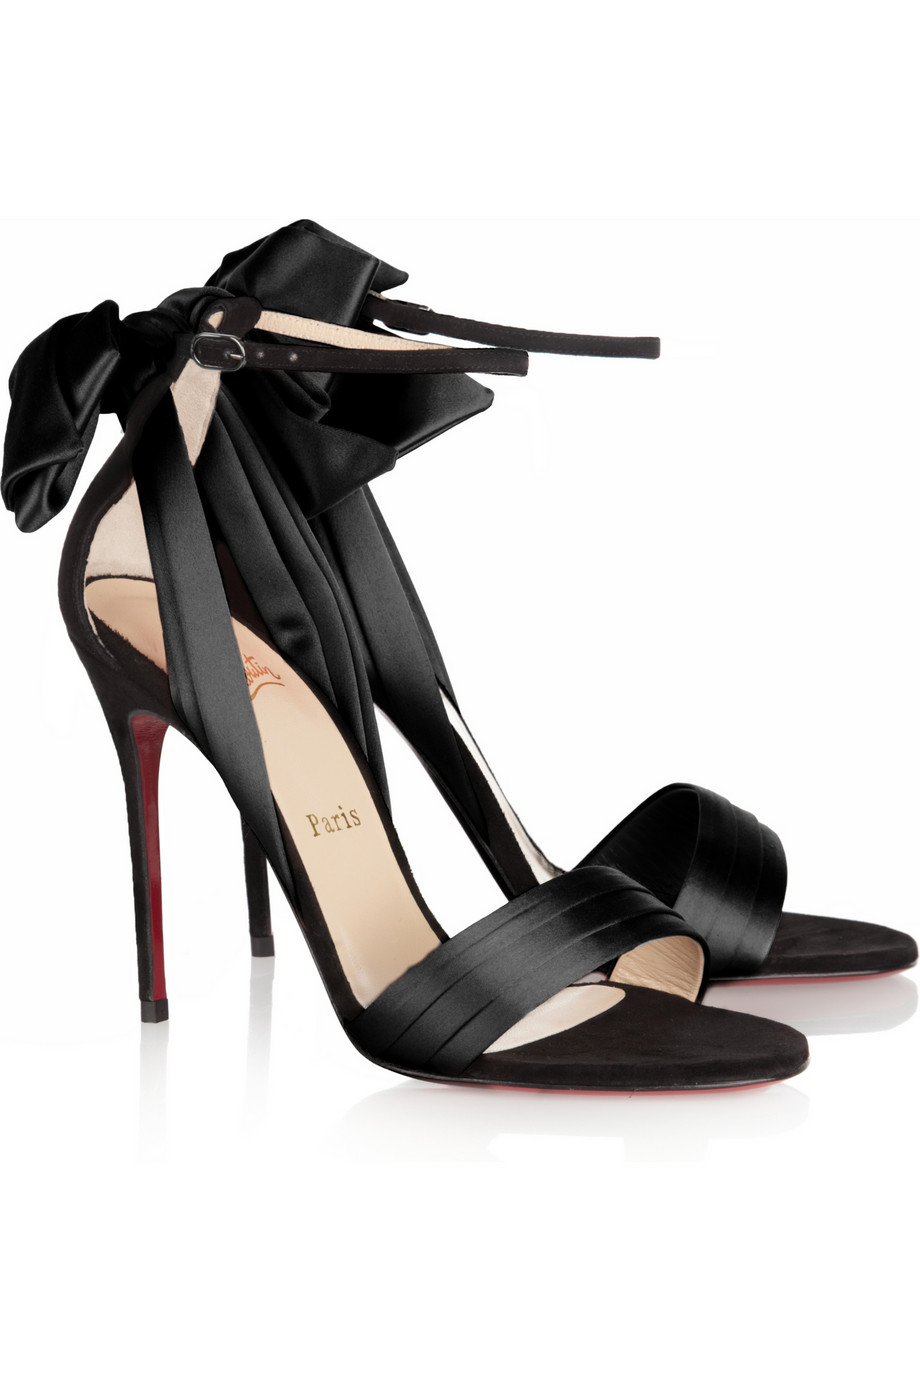 mens spiked loafers christian louboutin - christian louboutin sandals Black suede | The Filipino Language ...